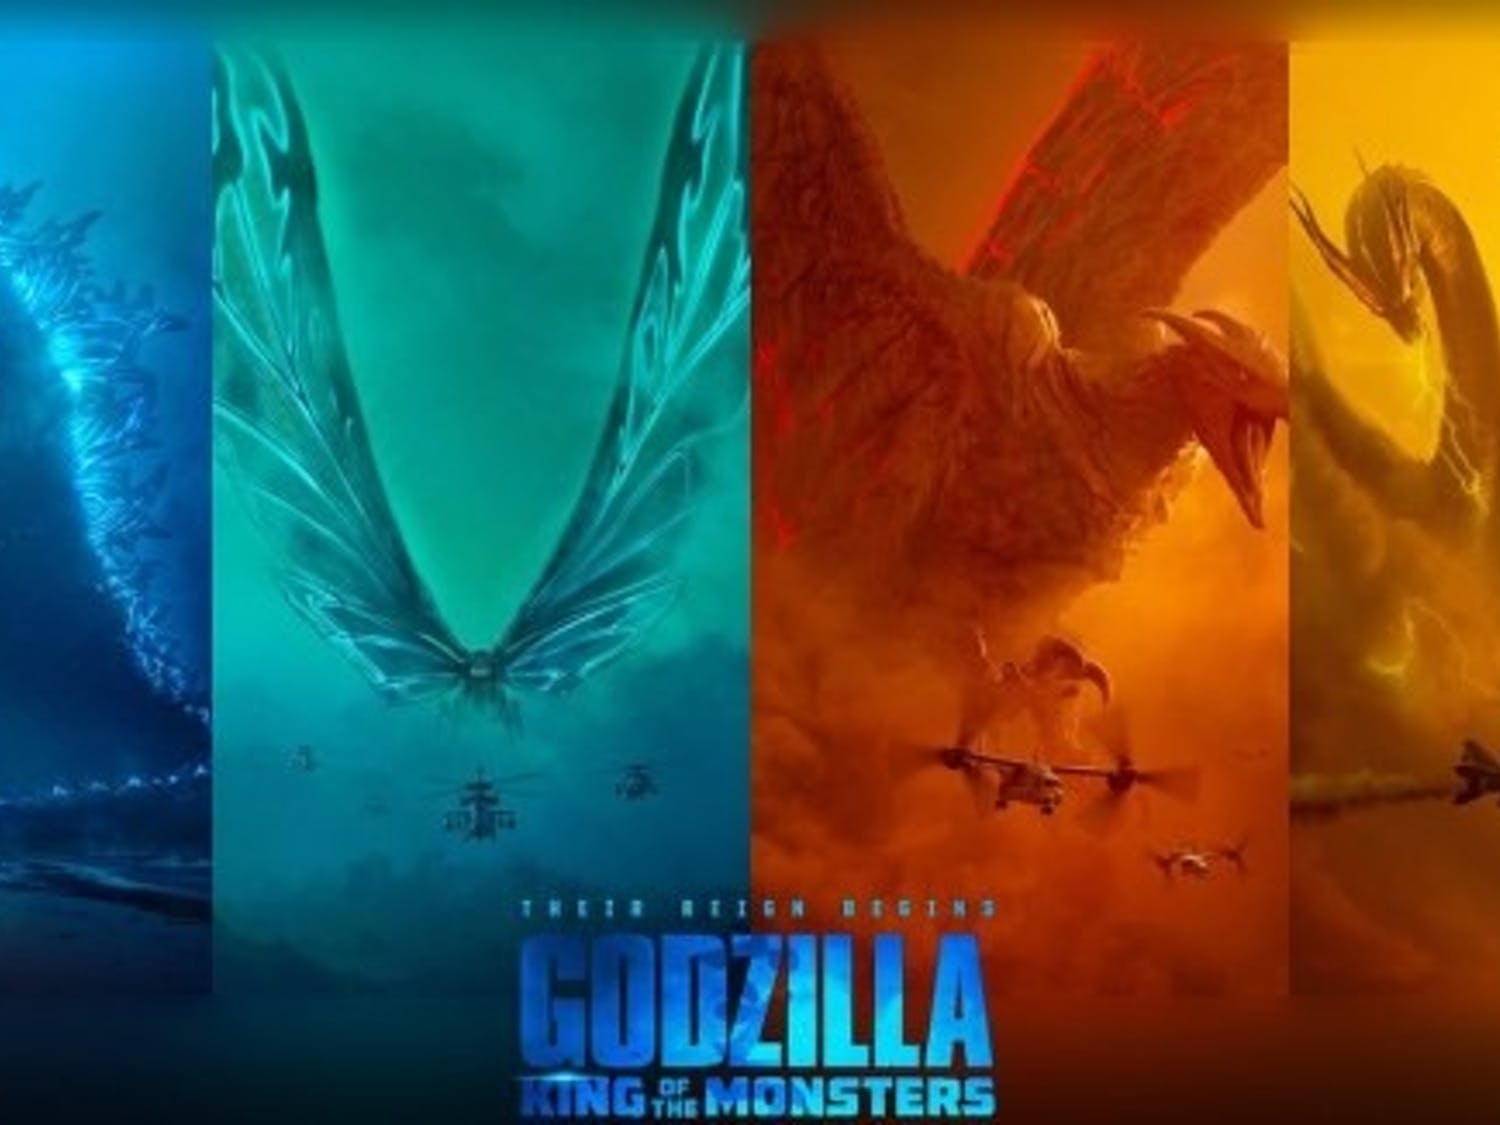 """Godzilla: King of the Monsters"" pits Godzilla against King Ghidorah, Rodan and Mothra, exciting many sci-fi/fantasy fans."